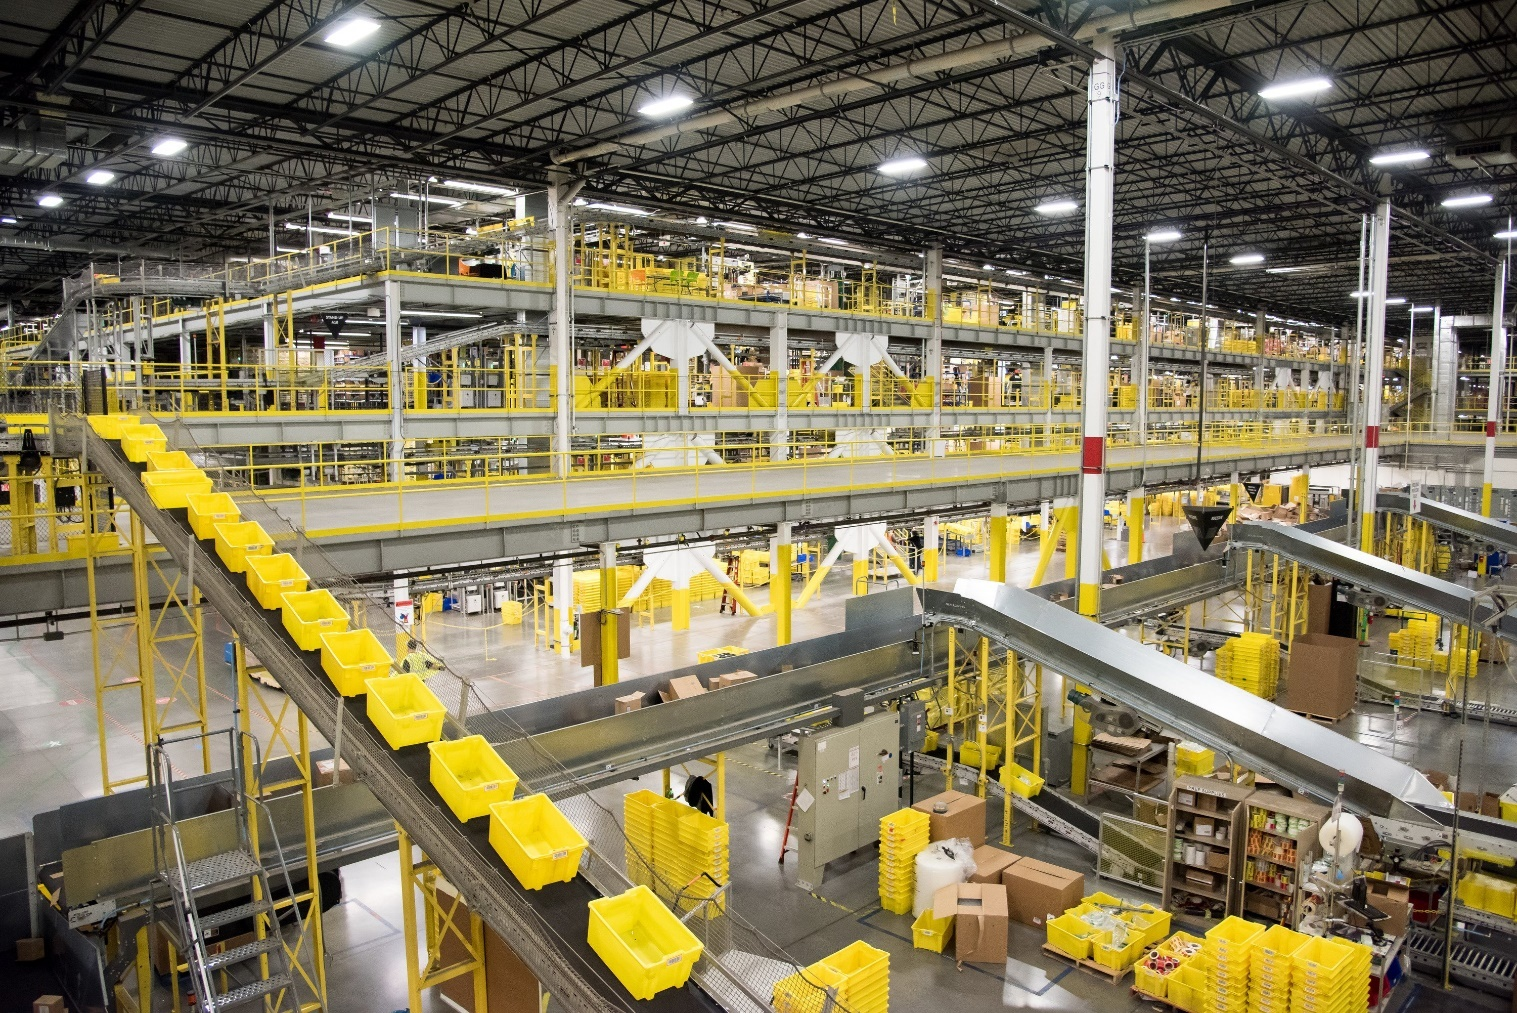 Prologis warehouse and good processing chain